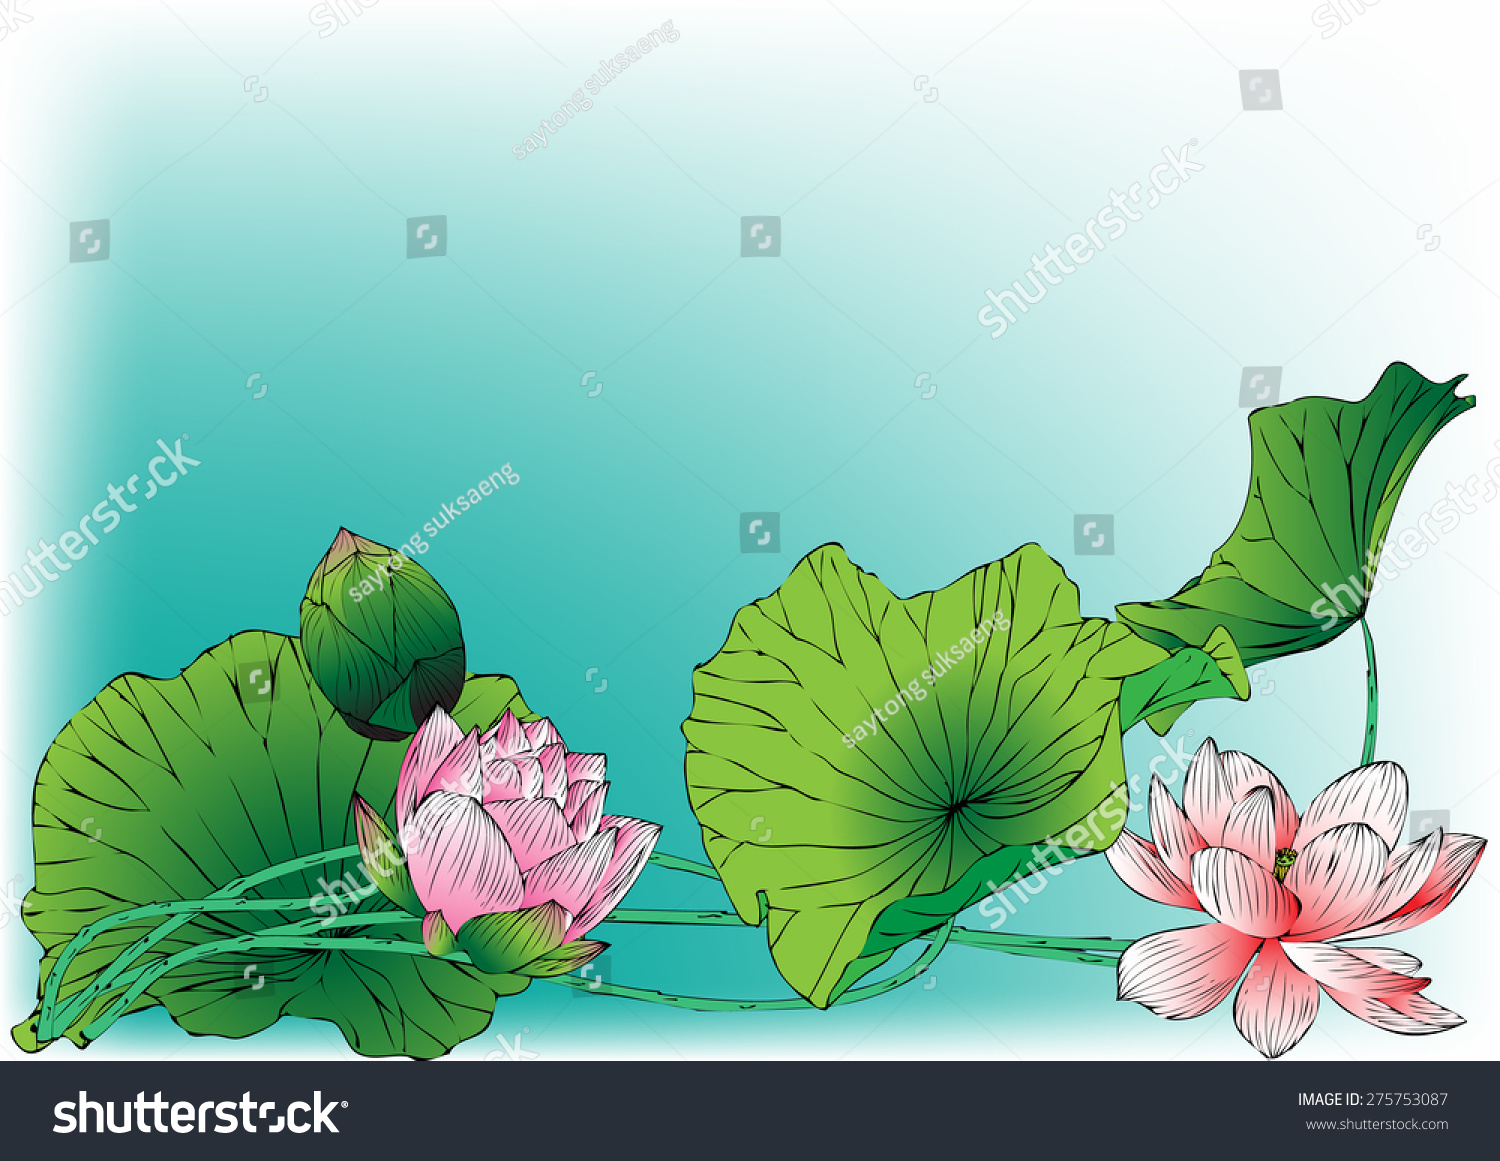 Lotus paintings vector hand drawn lotus flowers stock vector lotus paintingsvector of hand drawn lotus flowers and leaves sketch floral botany collection izmirmasajfo